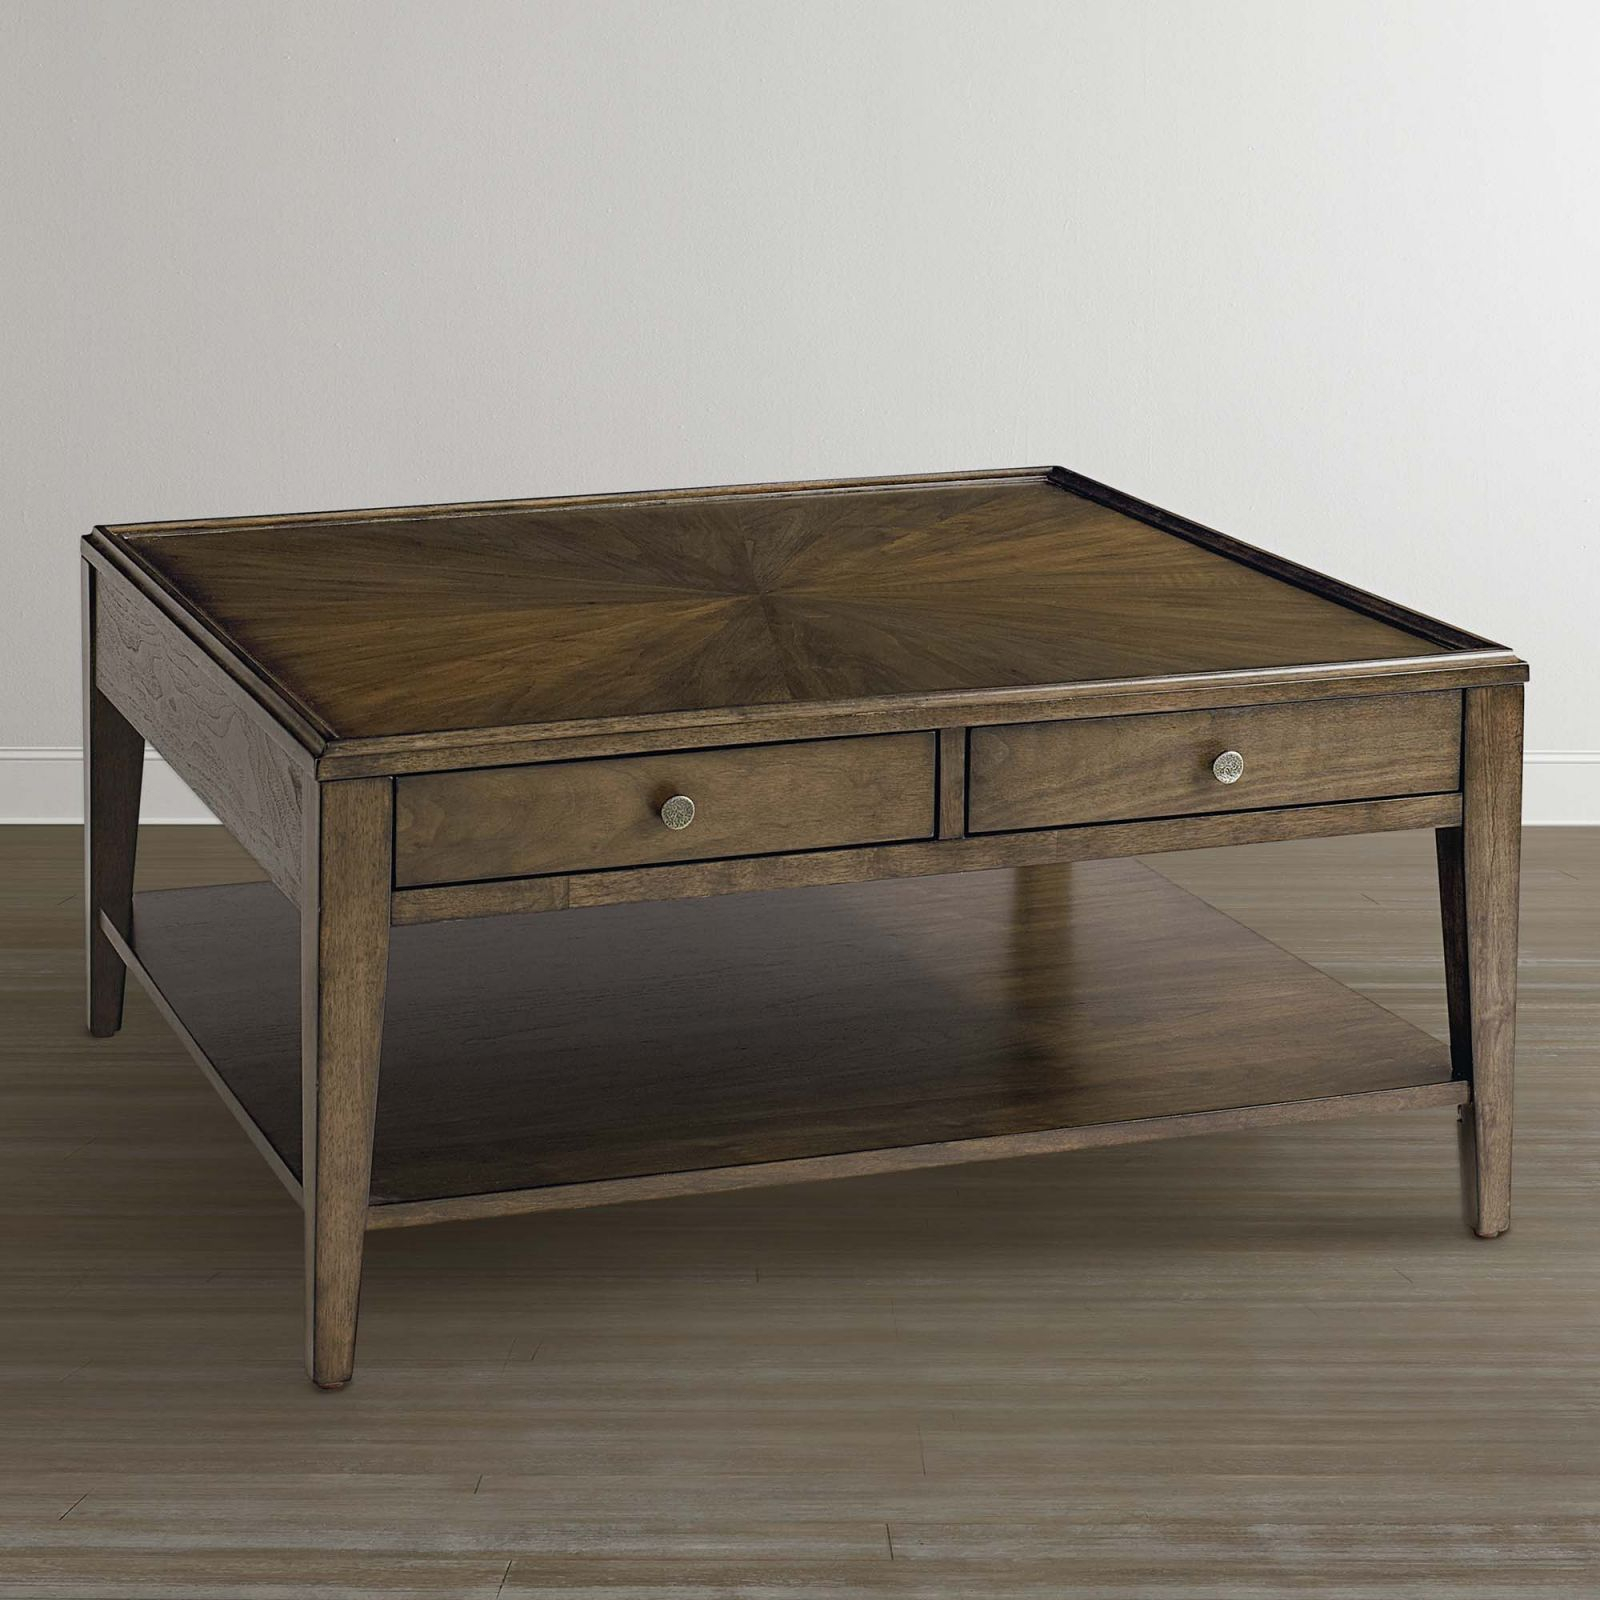 Coffee Tables | Cocktail Tables With Storage | Bassett Furniture with regard to Square Coffee Table With Storage